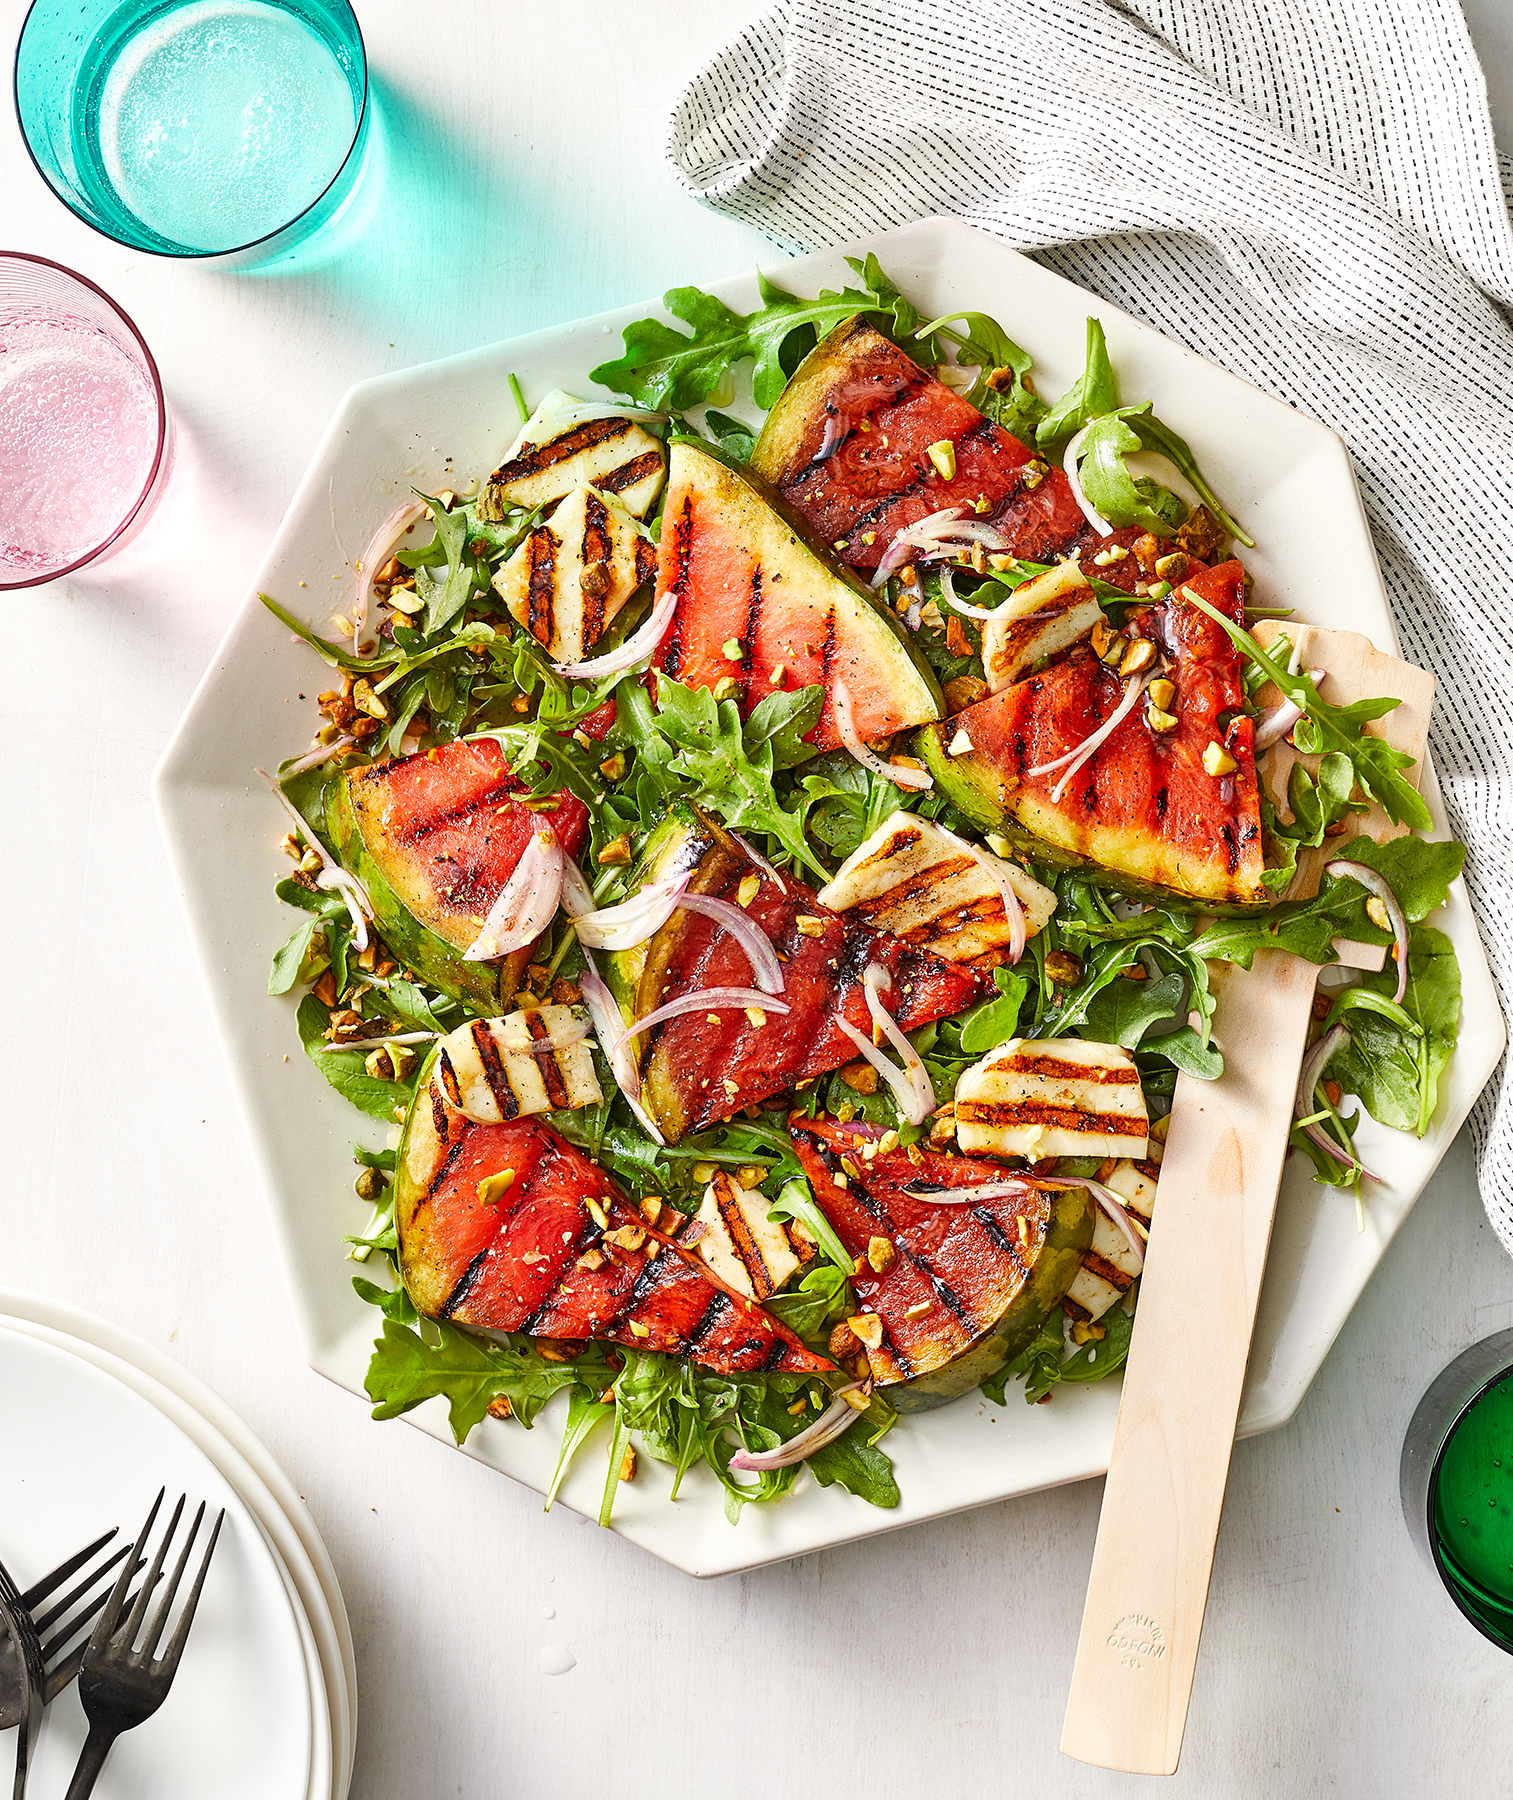 Grilled Watermelon and Halloumi Salad With Ginger-Lime Vinaigrette